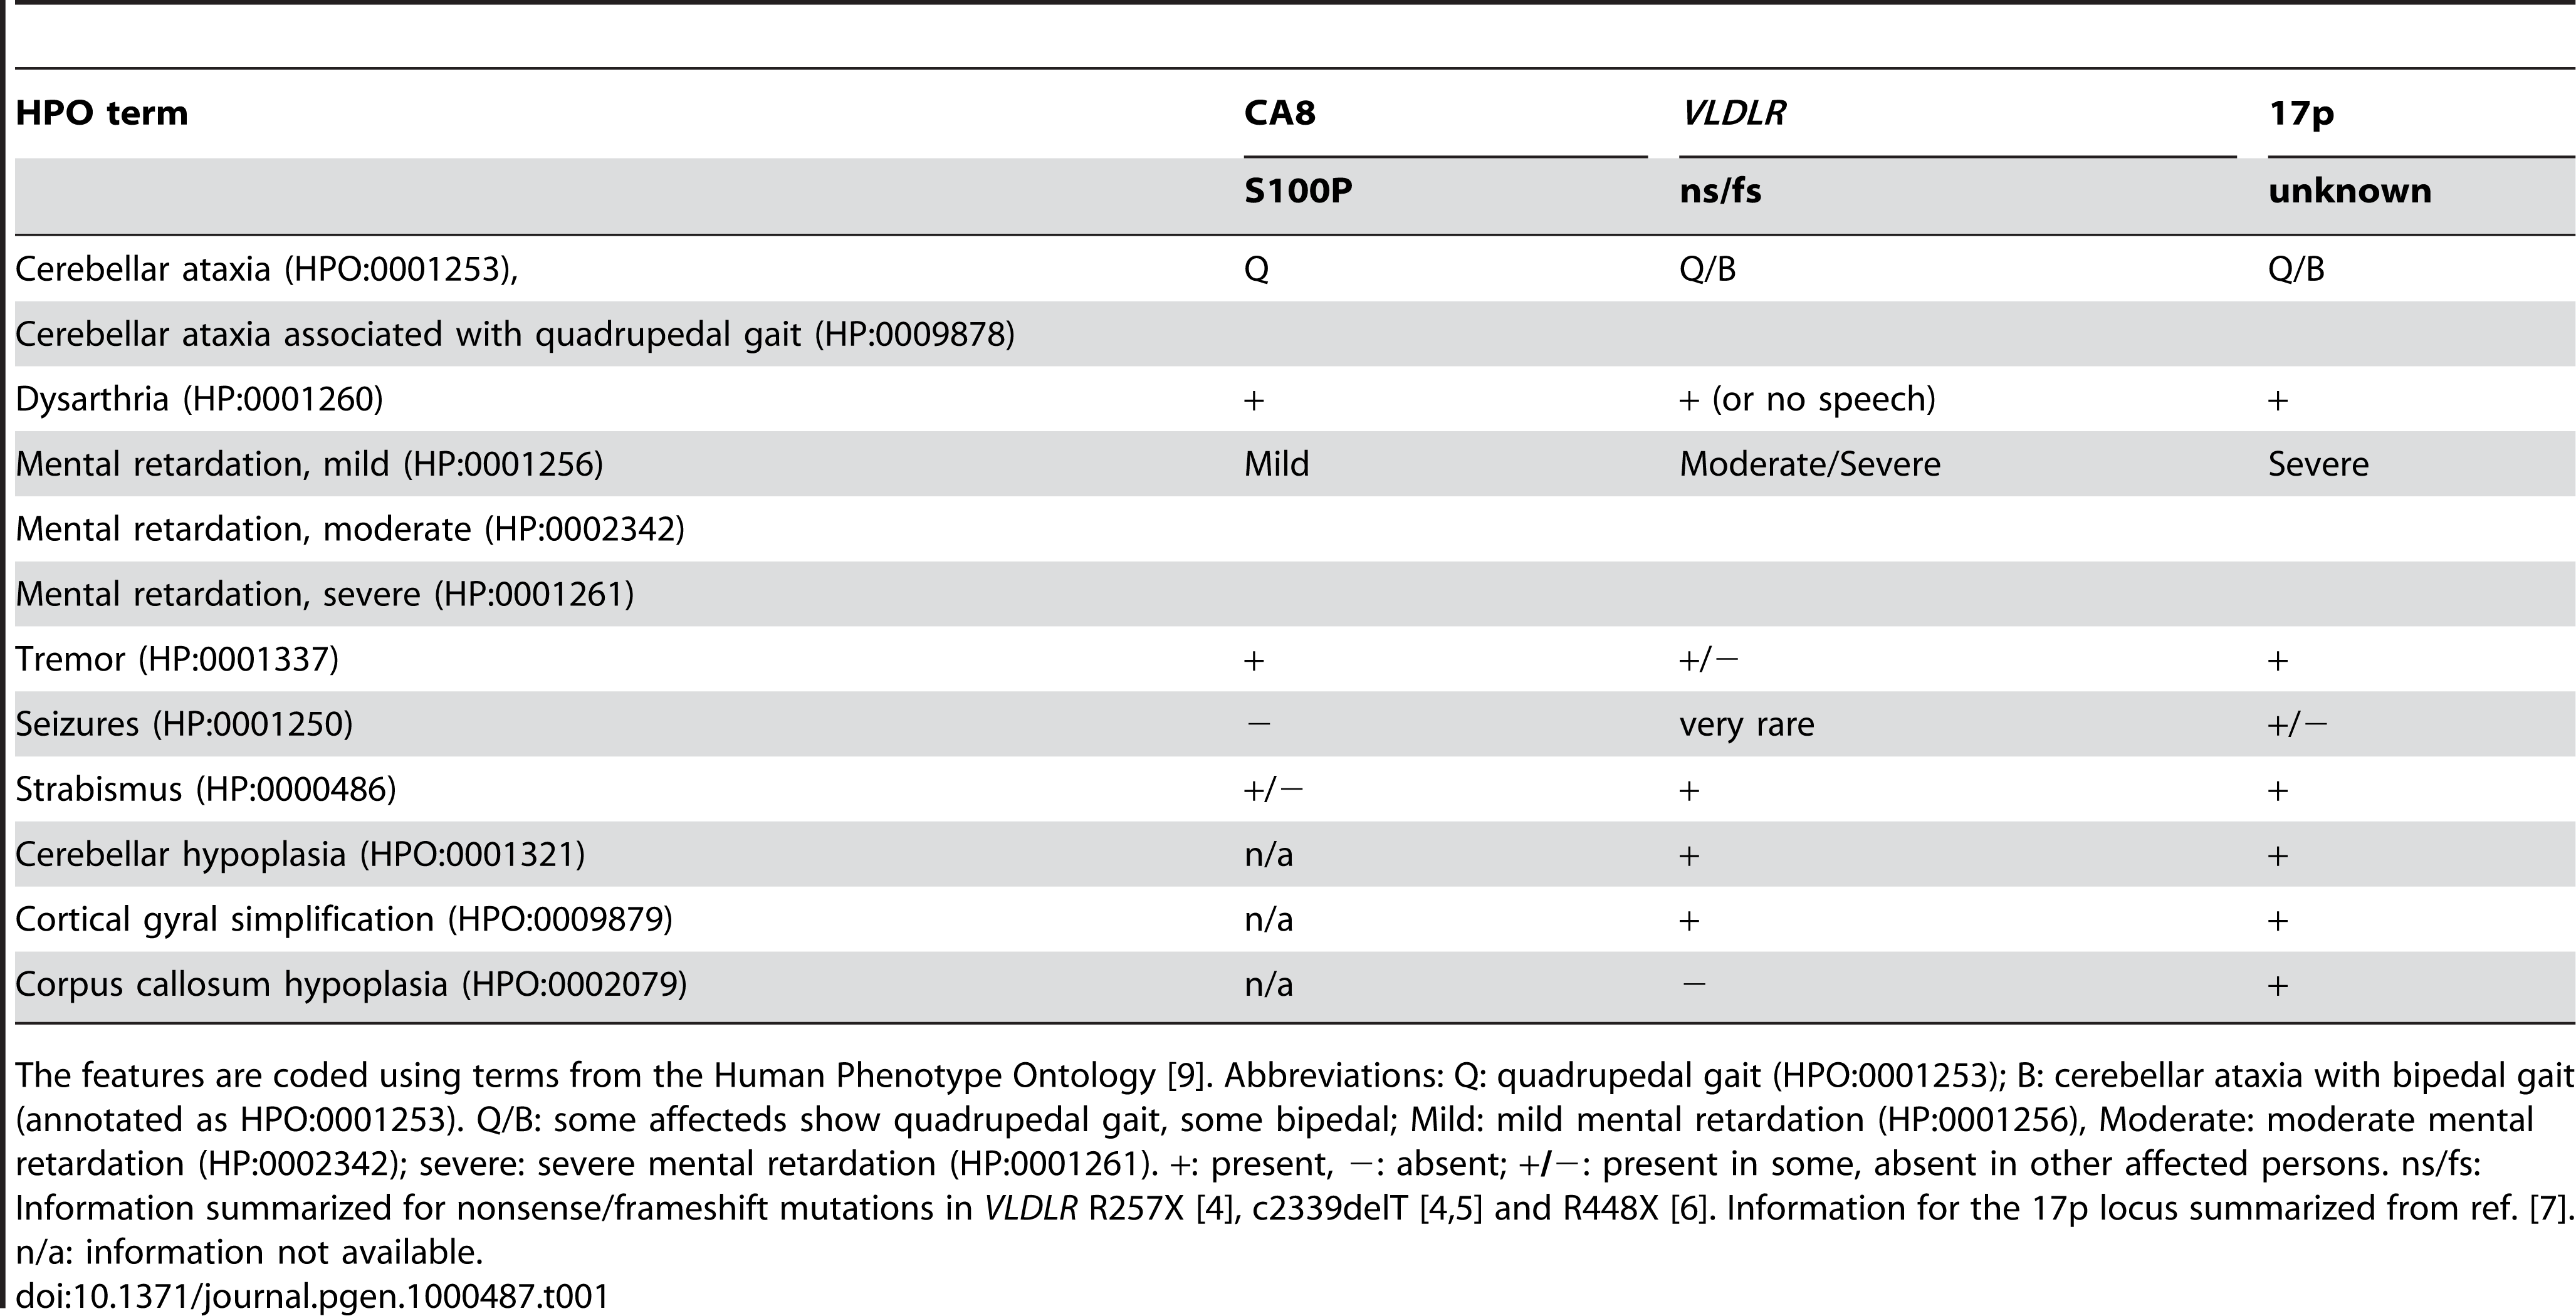 Clinical features of the affected persons of the family presented in this work and summary of features found related to mutations in <i>VLDLR</i> and at a locus on chromosome 17p.